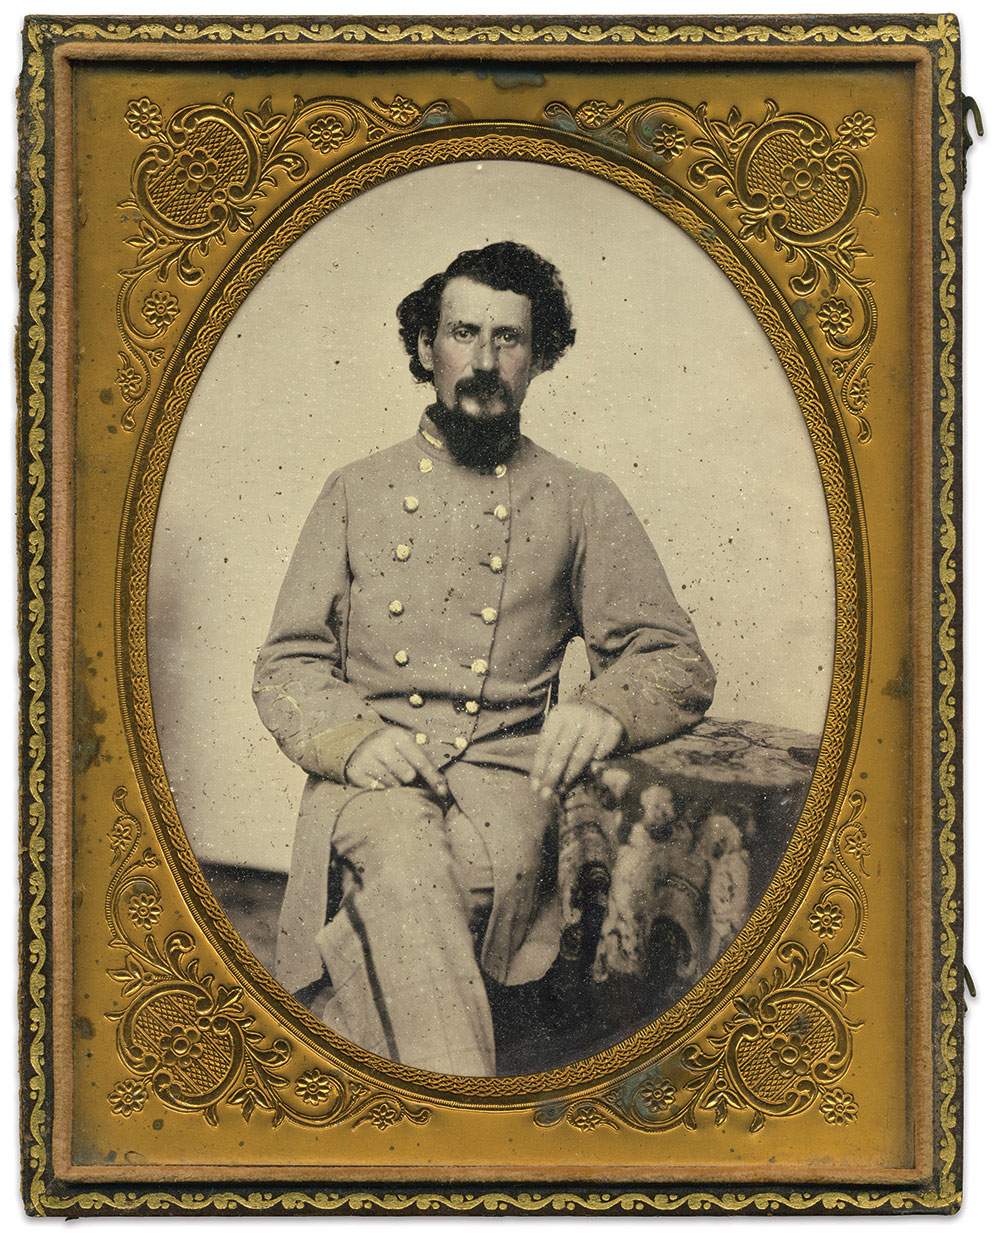 Half-plate ambrotype attributed to Charles R. Rees of Richmond, Va. Matthew Fleming Collection.